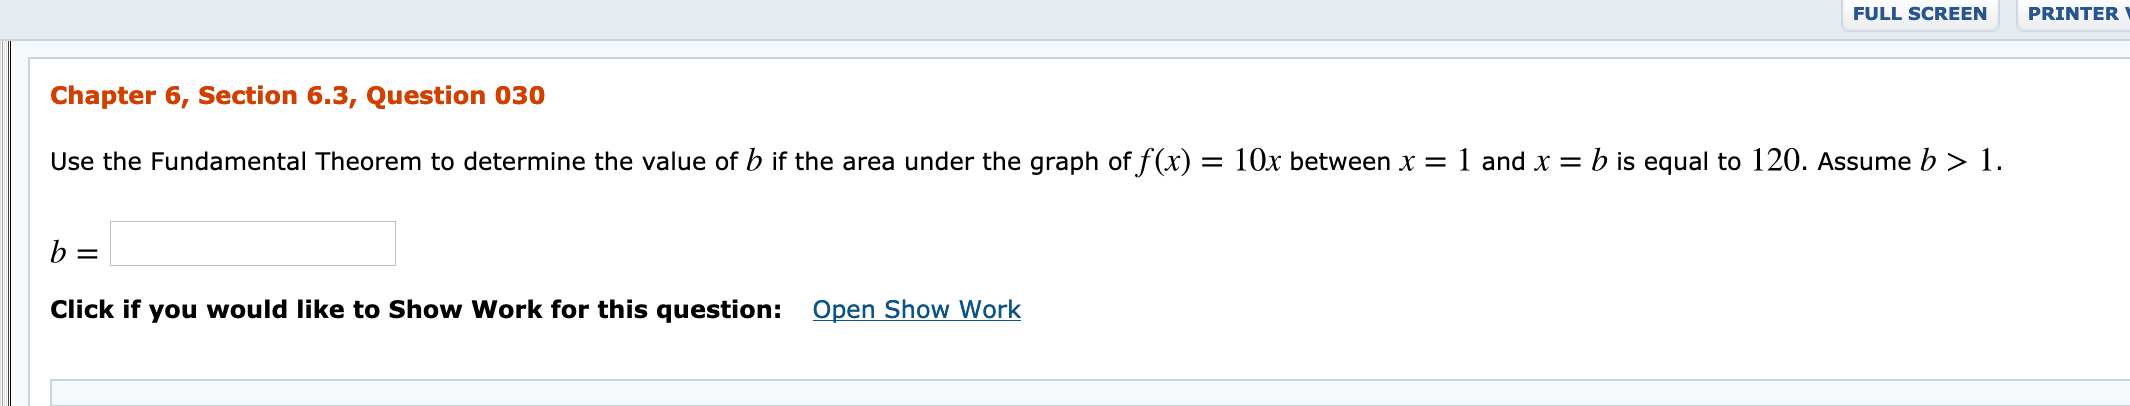 FULL SCREEN PRINTER Chapter 6, Section 6.3, Question 030 Use the Fundamental Theorem to determine the value of b if the area under the graph of f(x) = 10x between x = 1 and x = b is equal to 120. Assume b > 1. Open Show Work Click if you would like to Show Work for this question: